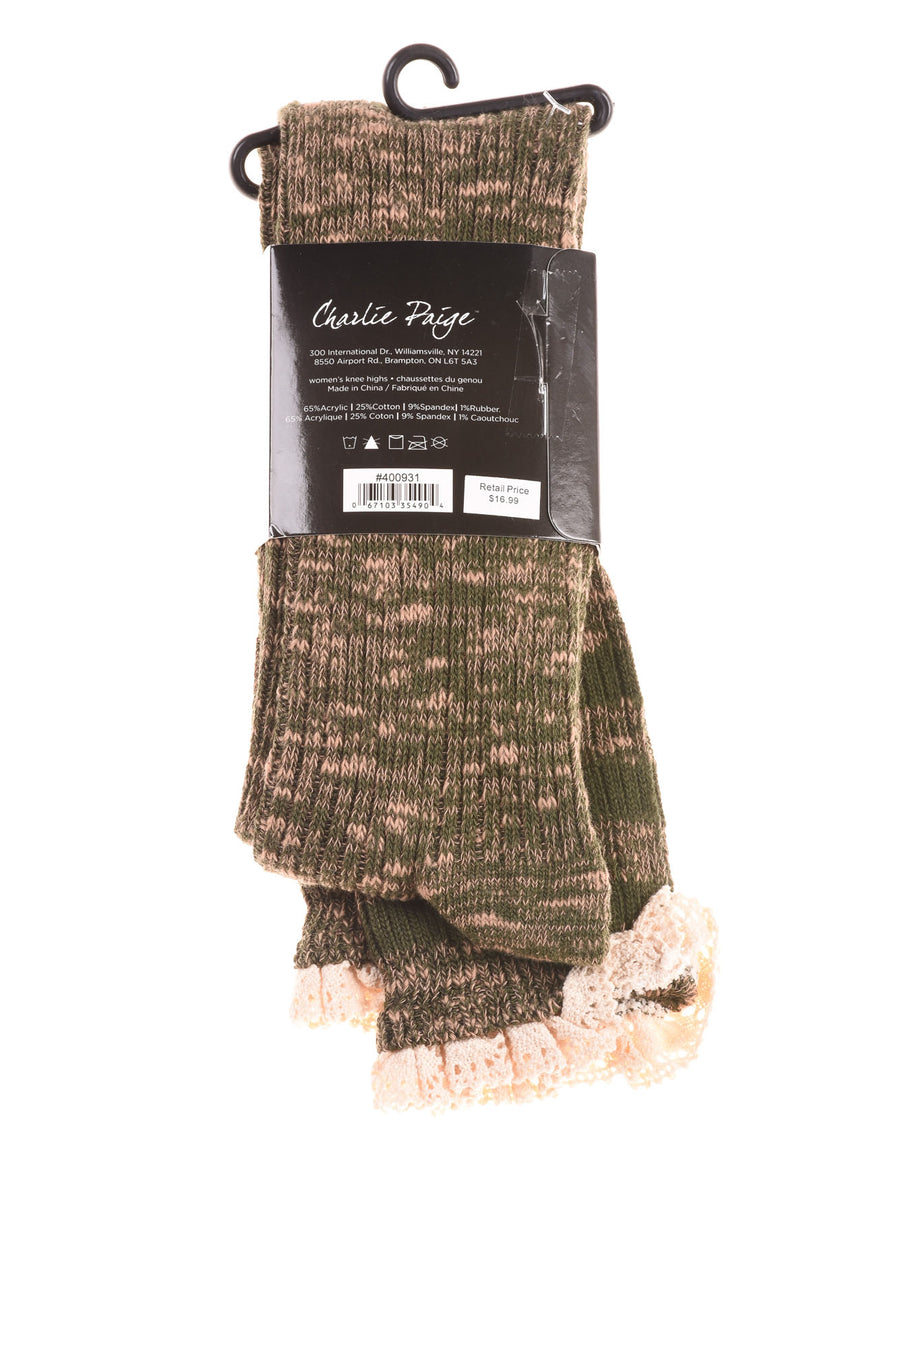 NEW Charlie Paige Women's Socks One Size Green & Tan